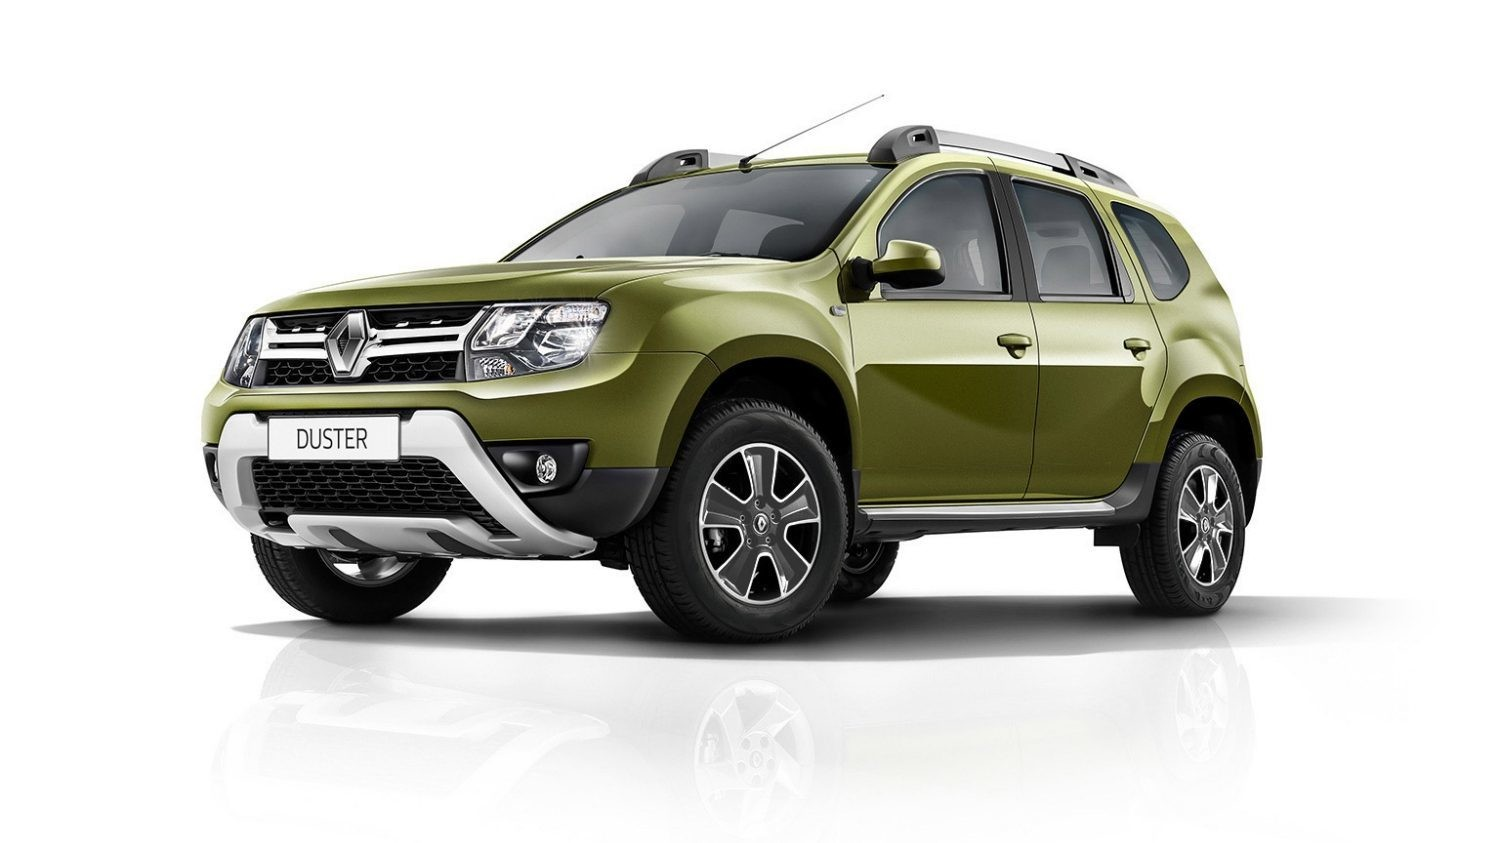 Renault Duster 1.5DCI SID305 2259R 6972R 8049R